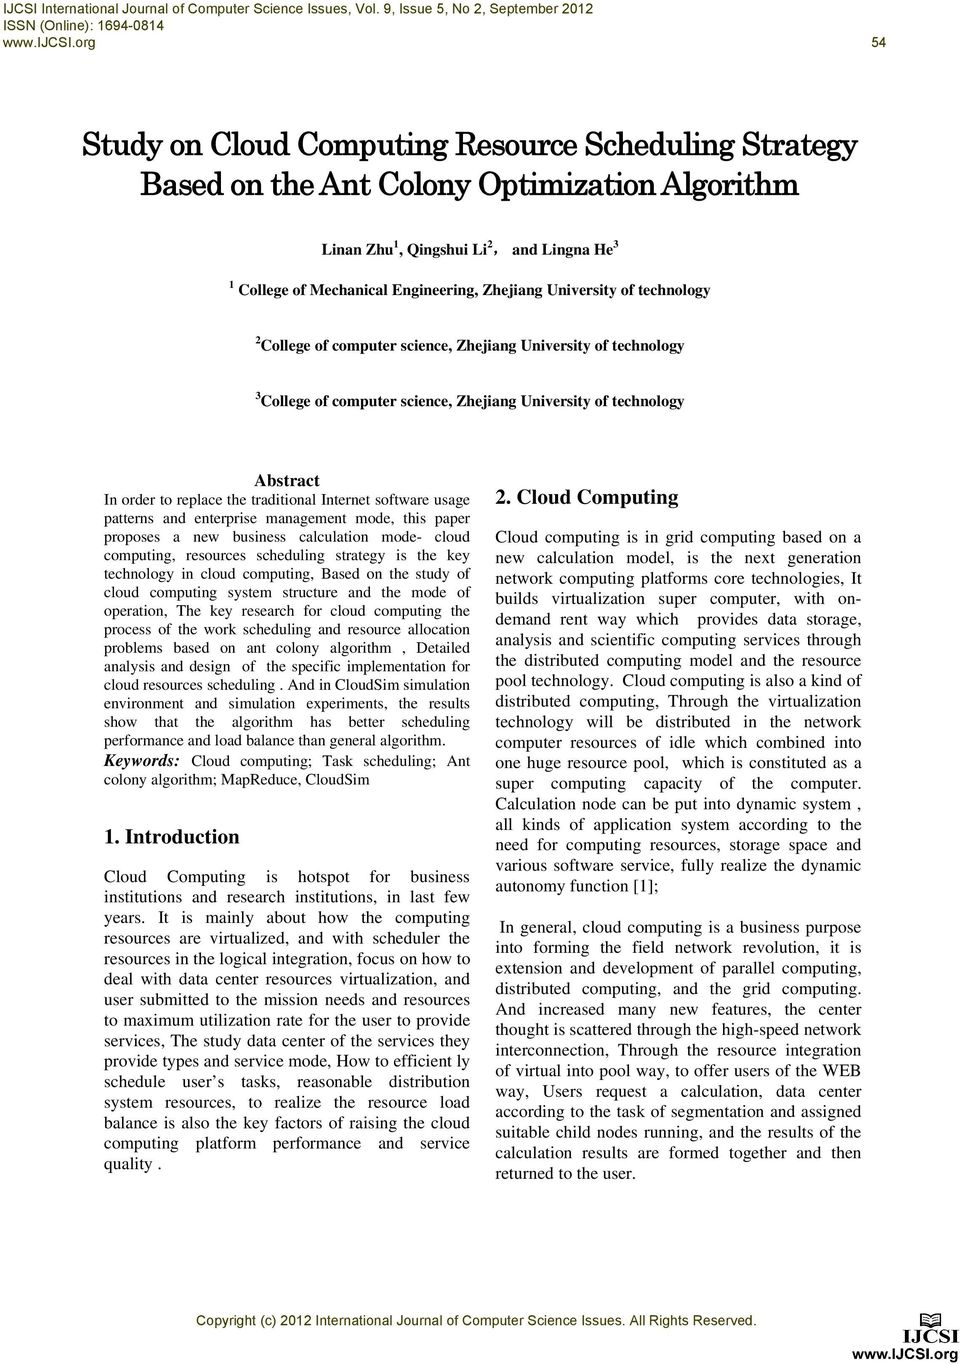 University of technology 2 College of computer science, Zhejiang University of technology 3 College of computer science, Zhejiang University of technology Abstract In order to replace the traditional